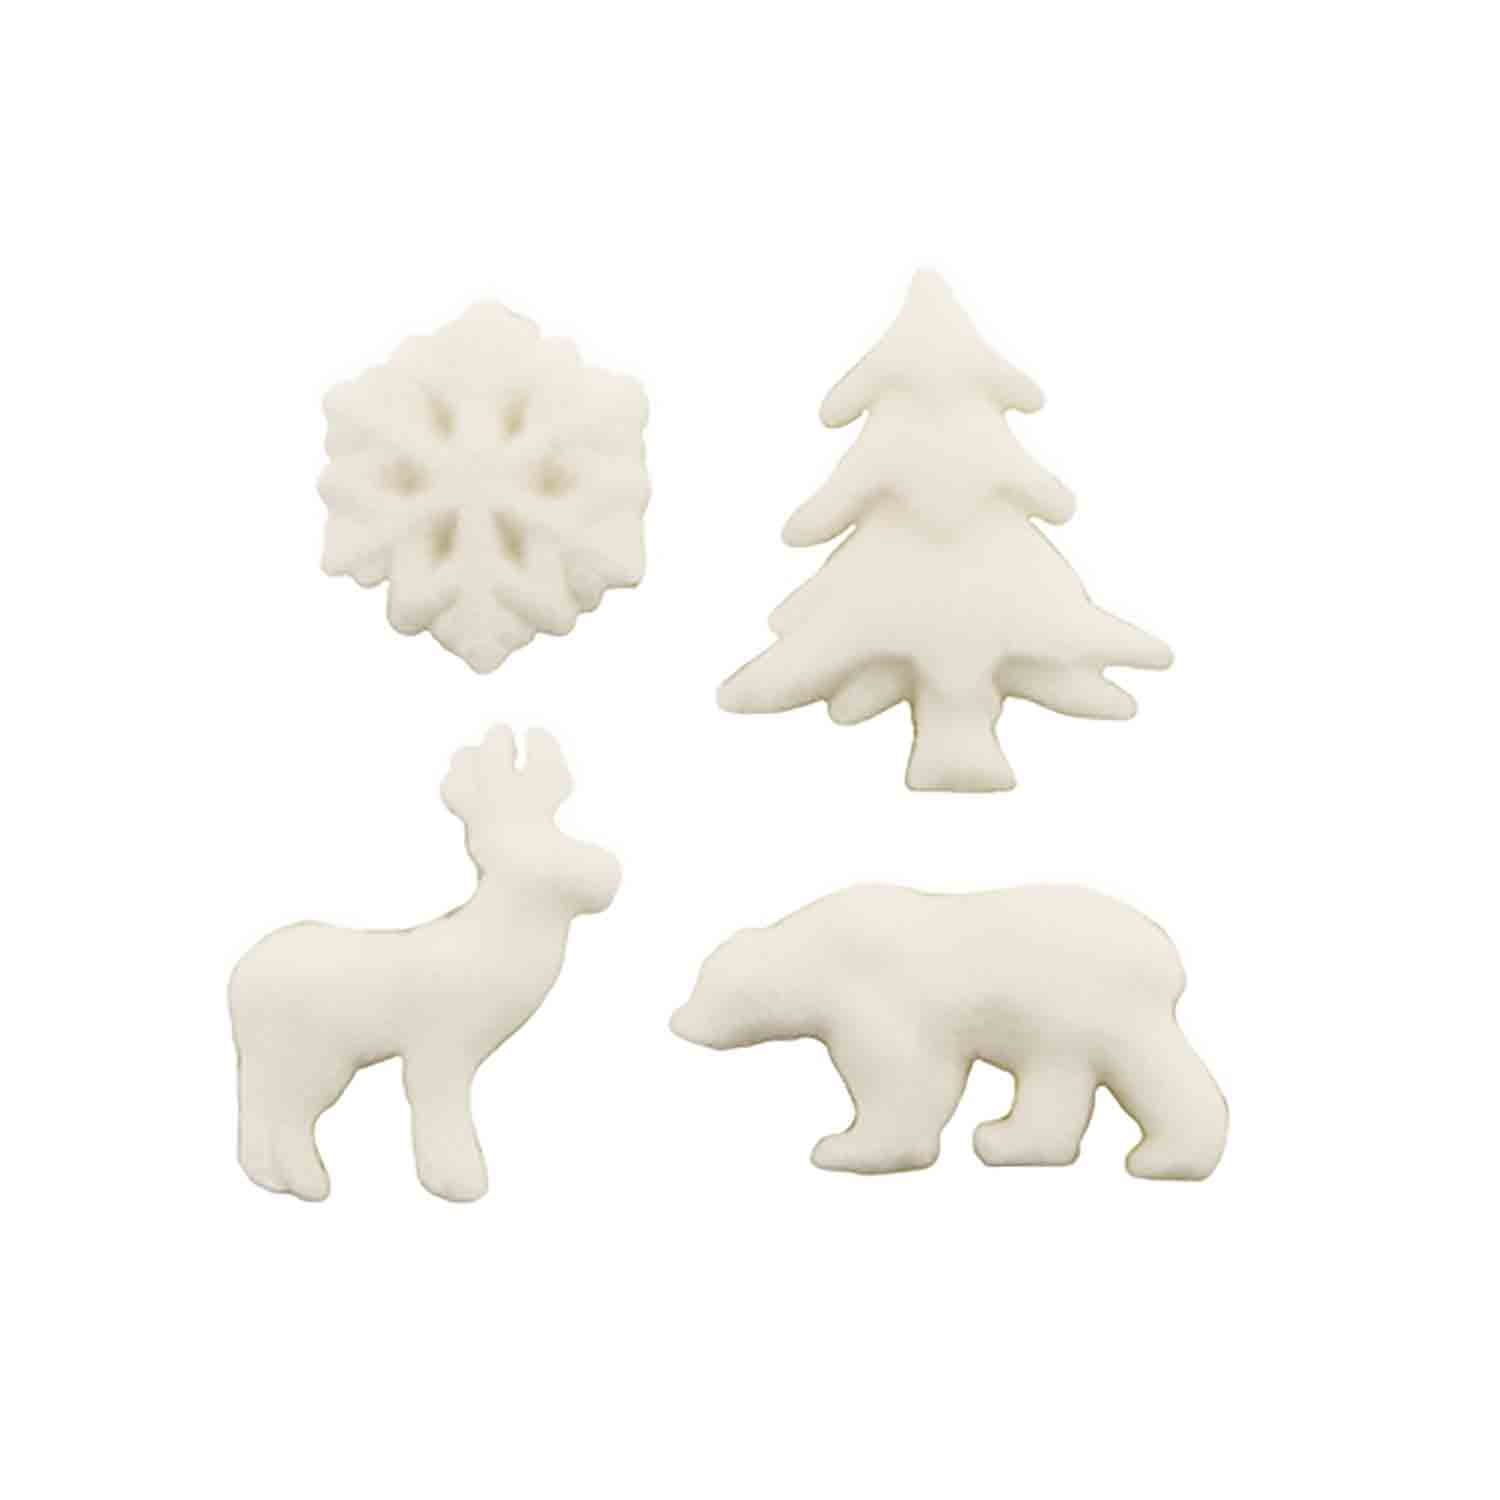 Dec-Ons® Molded Sugar - Artic Animal Assortment